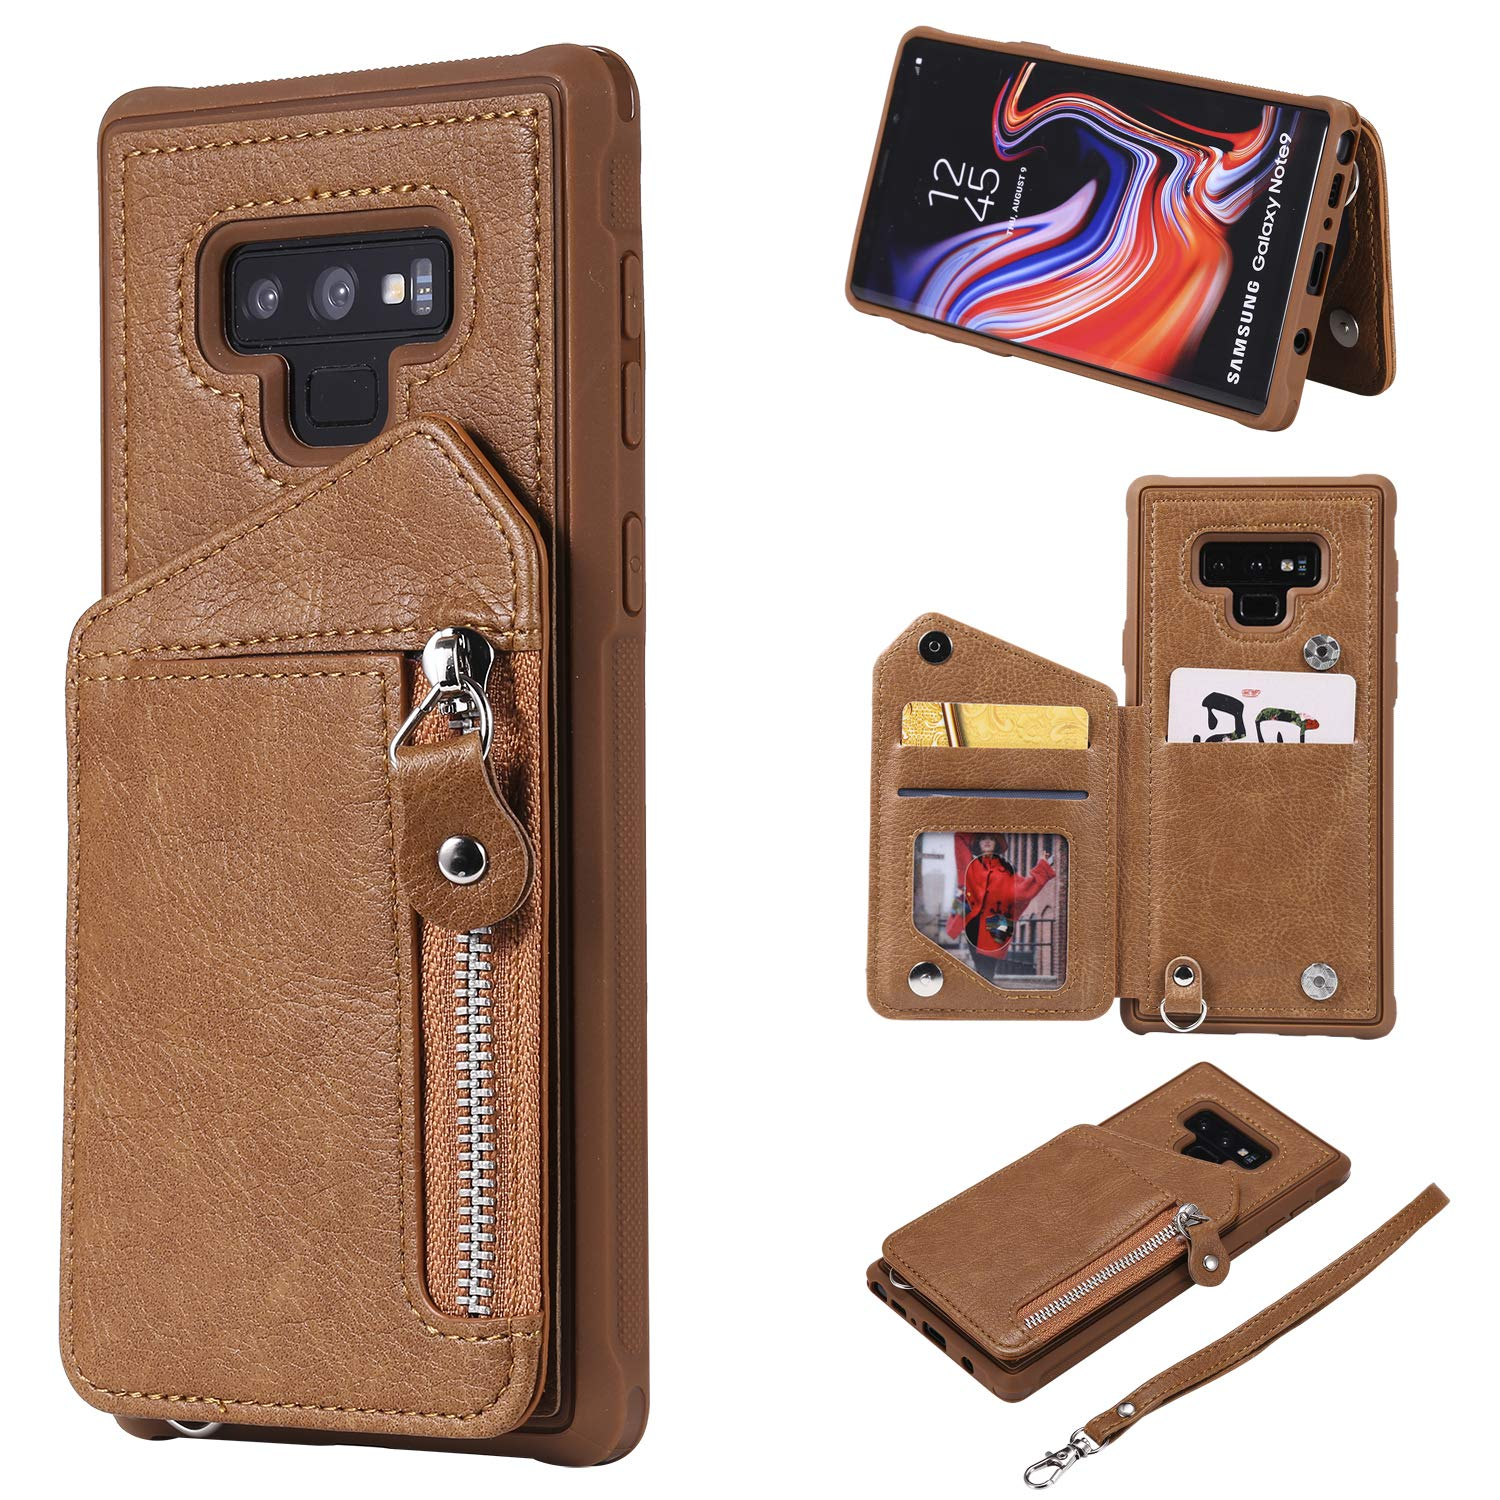 DAMONDY Case for Galaxy Note 9, Zipper Wallet Purse Card Holders Design Cover Soft Shockproof Bumper Folio Flip Leather Kickstand Clasp Wrist Strap Case for Samsung Galaxy Note 9-Coffee by DAMONDY